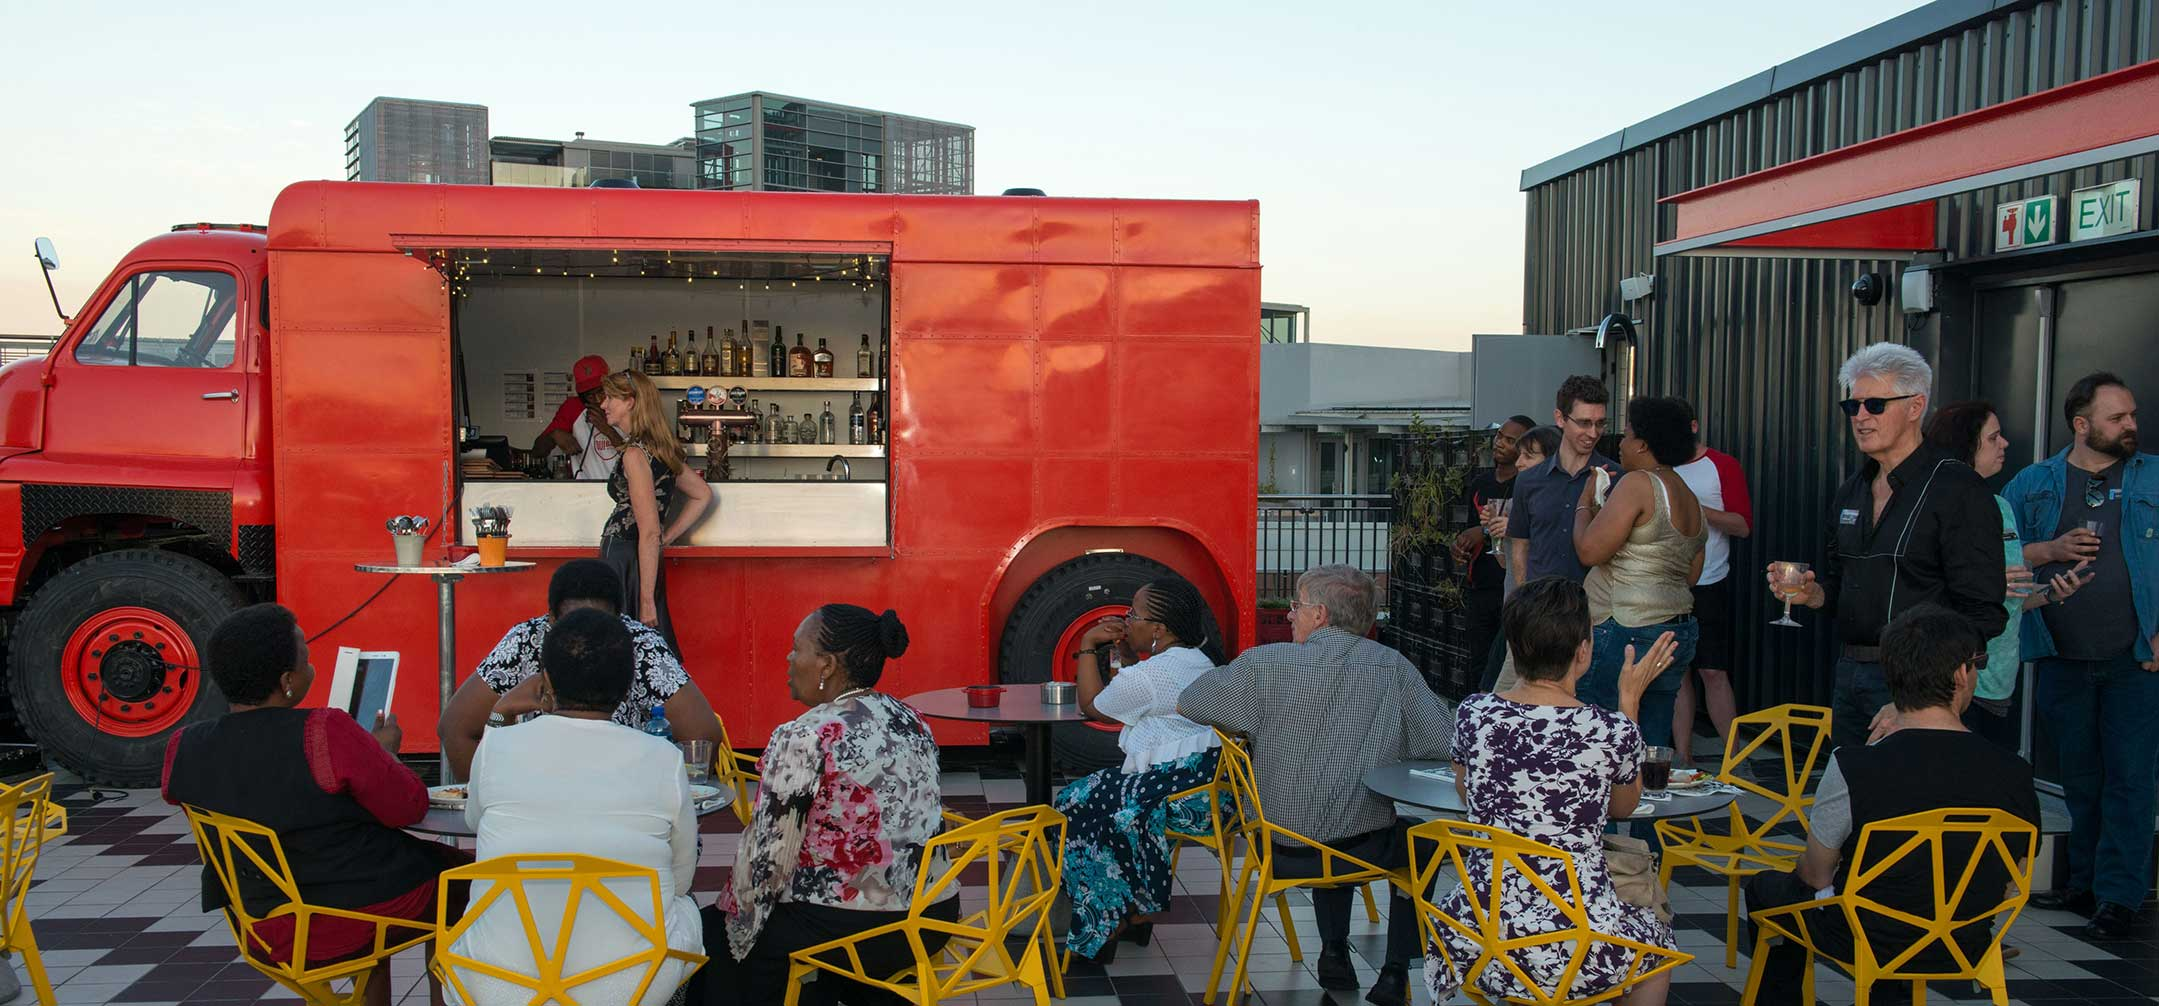 Folio's Year-end Party at the Radisson Red Roof-top Bar, 06.12.2017.